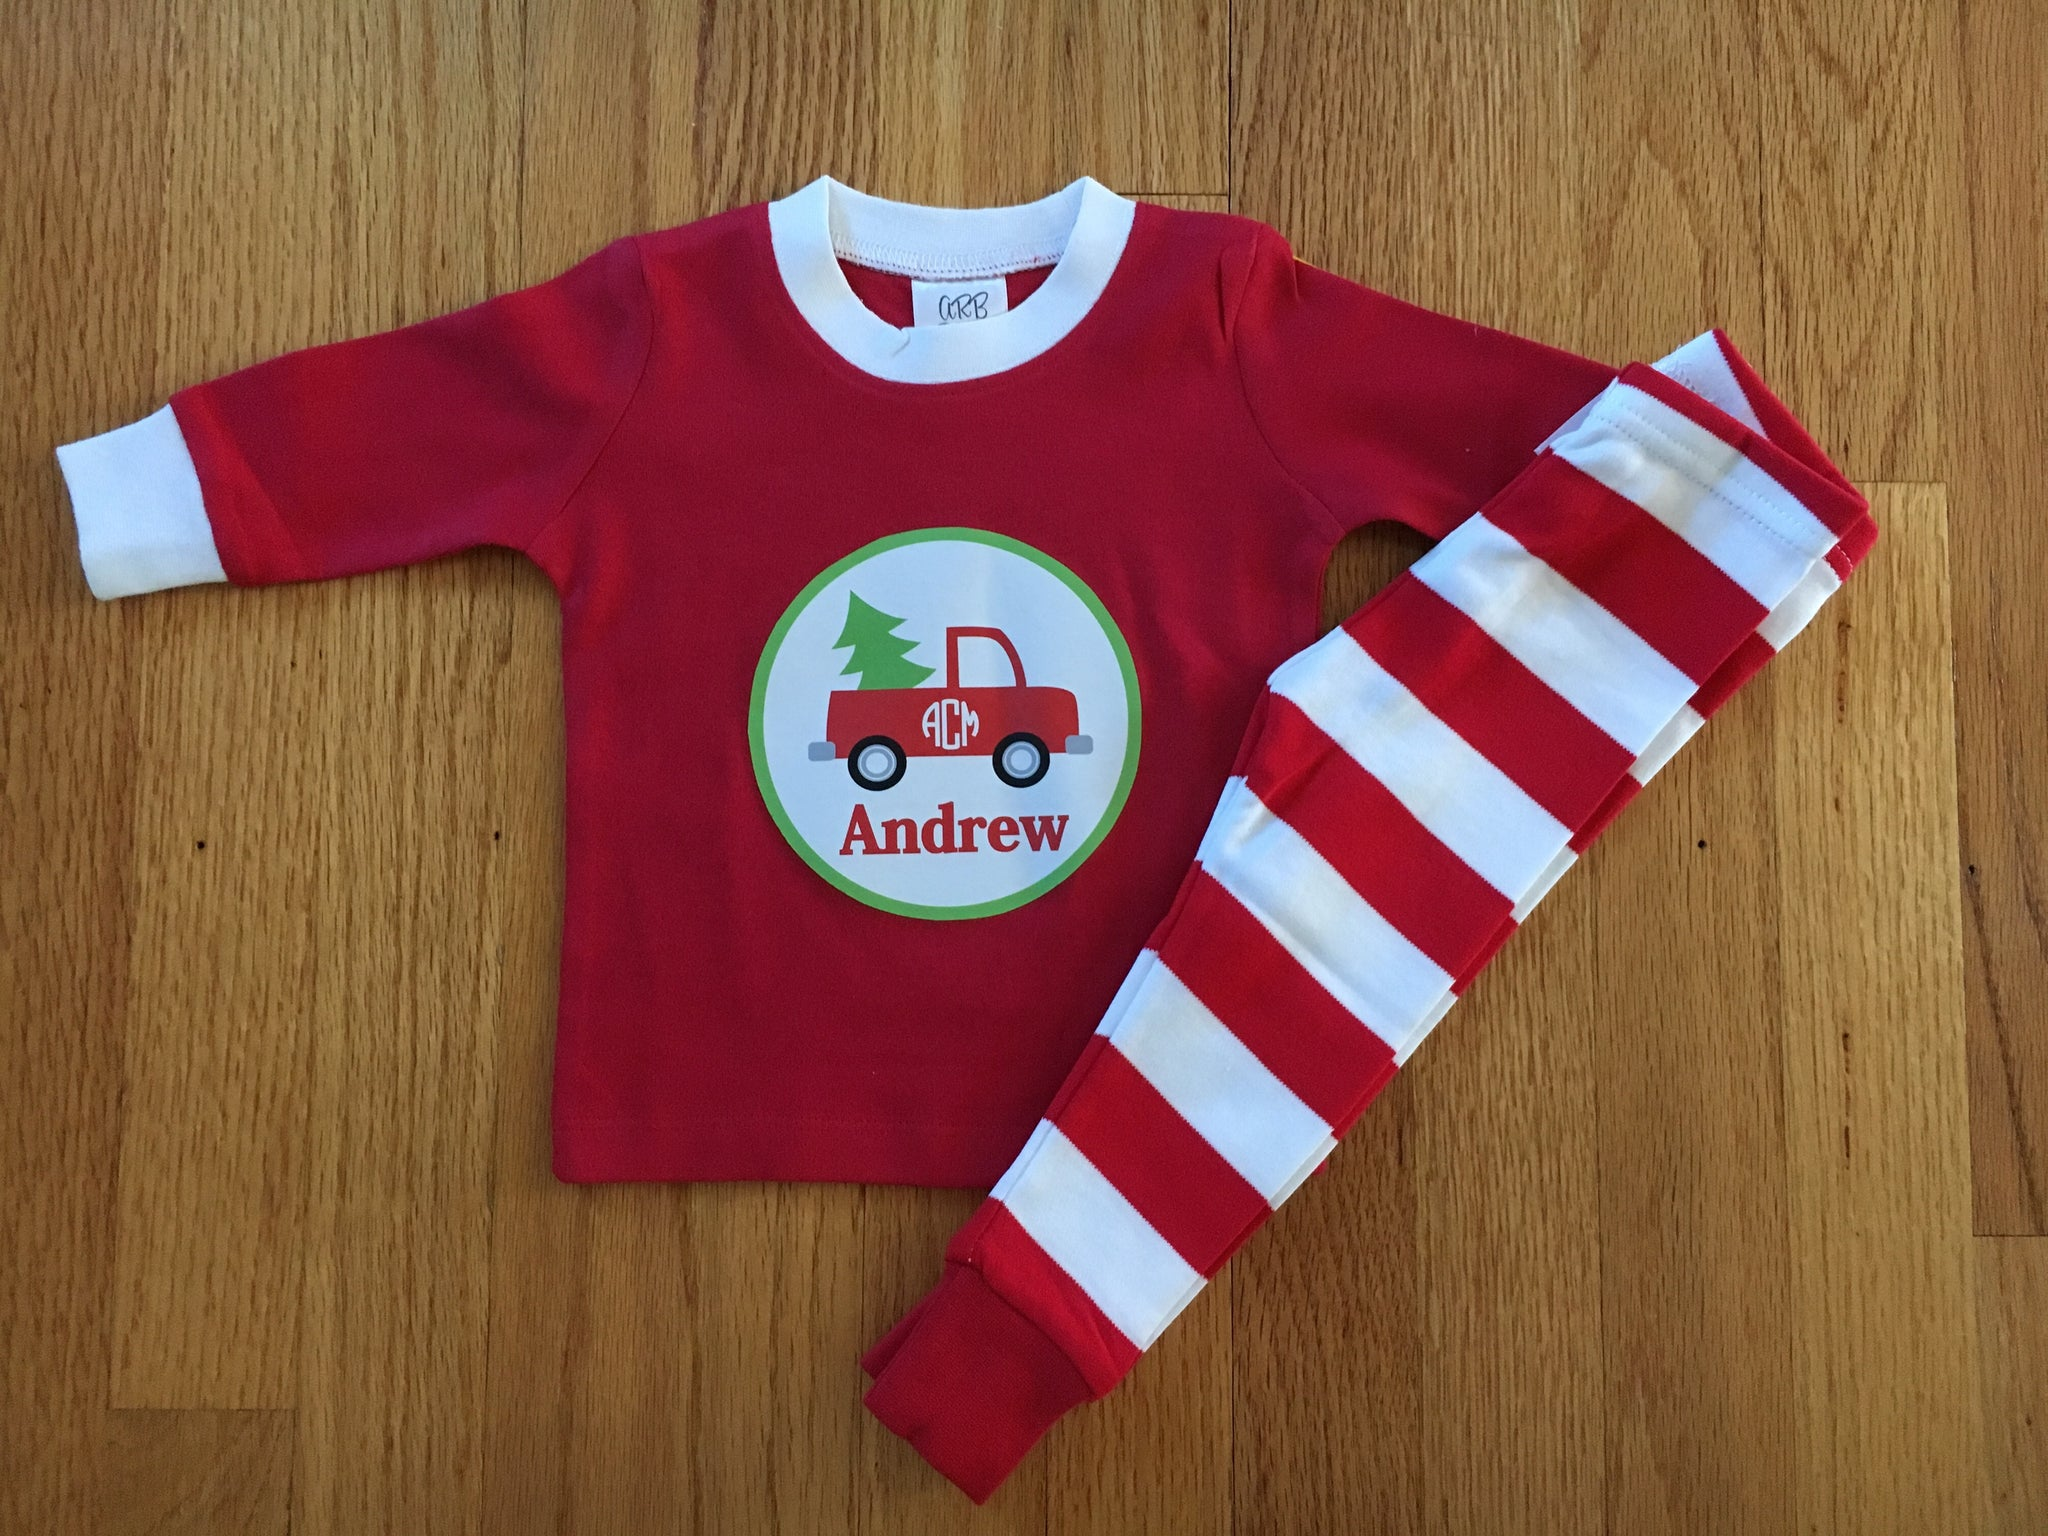 08eb6b94d6 ... Personalized Infant and Toddler Christmas Pajamas Loungewear ...